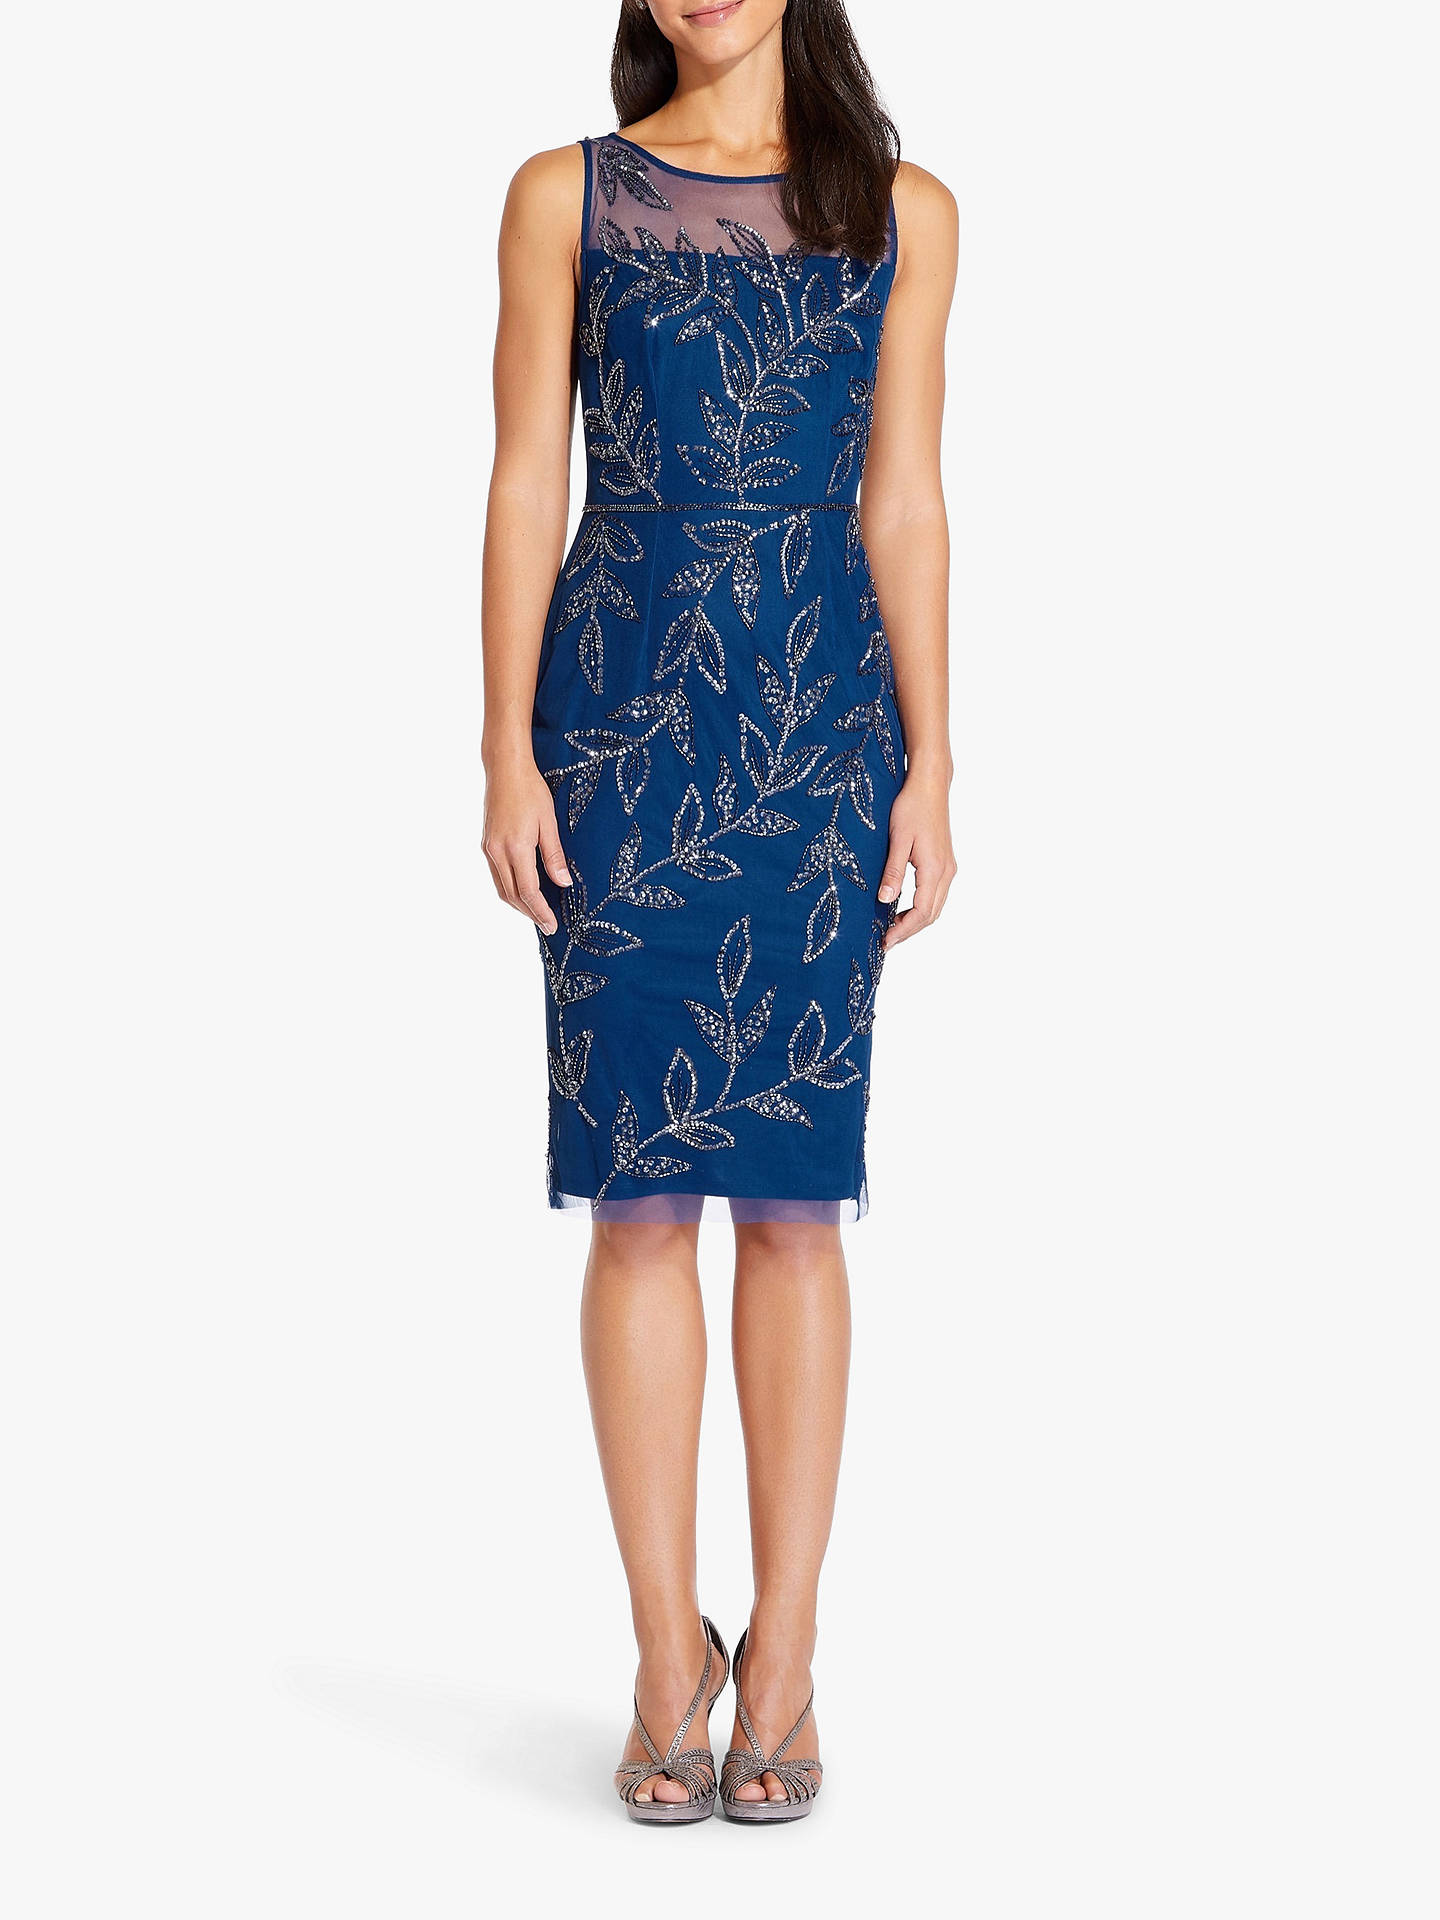 888dd8d2 ... Buy Adrianna Papell Beaded Leaf Dress, Night Blue, 6 Online at  johnlewis.com ...